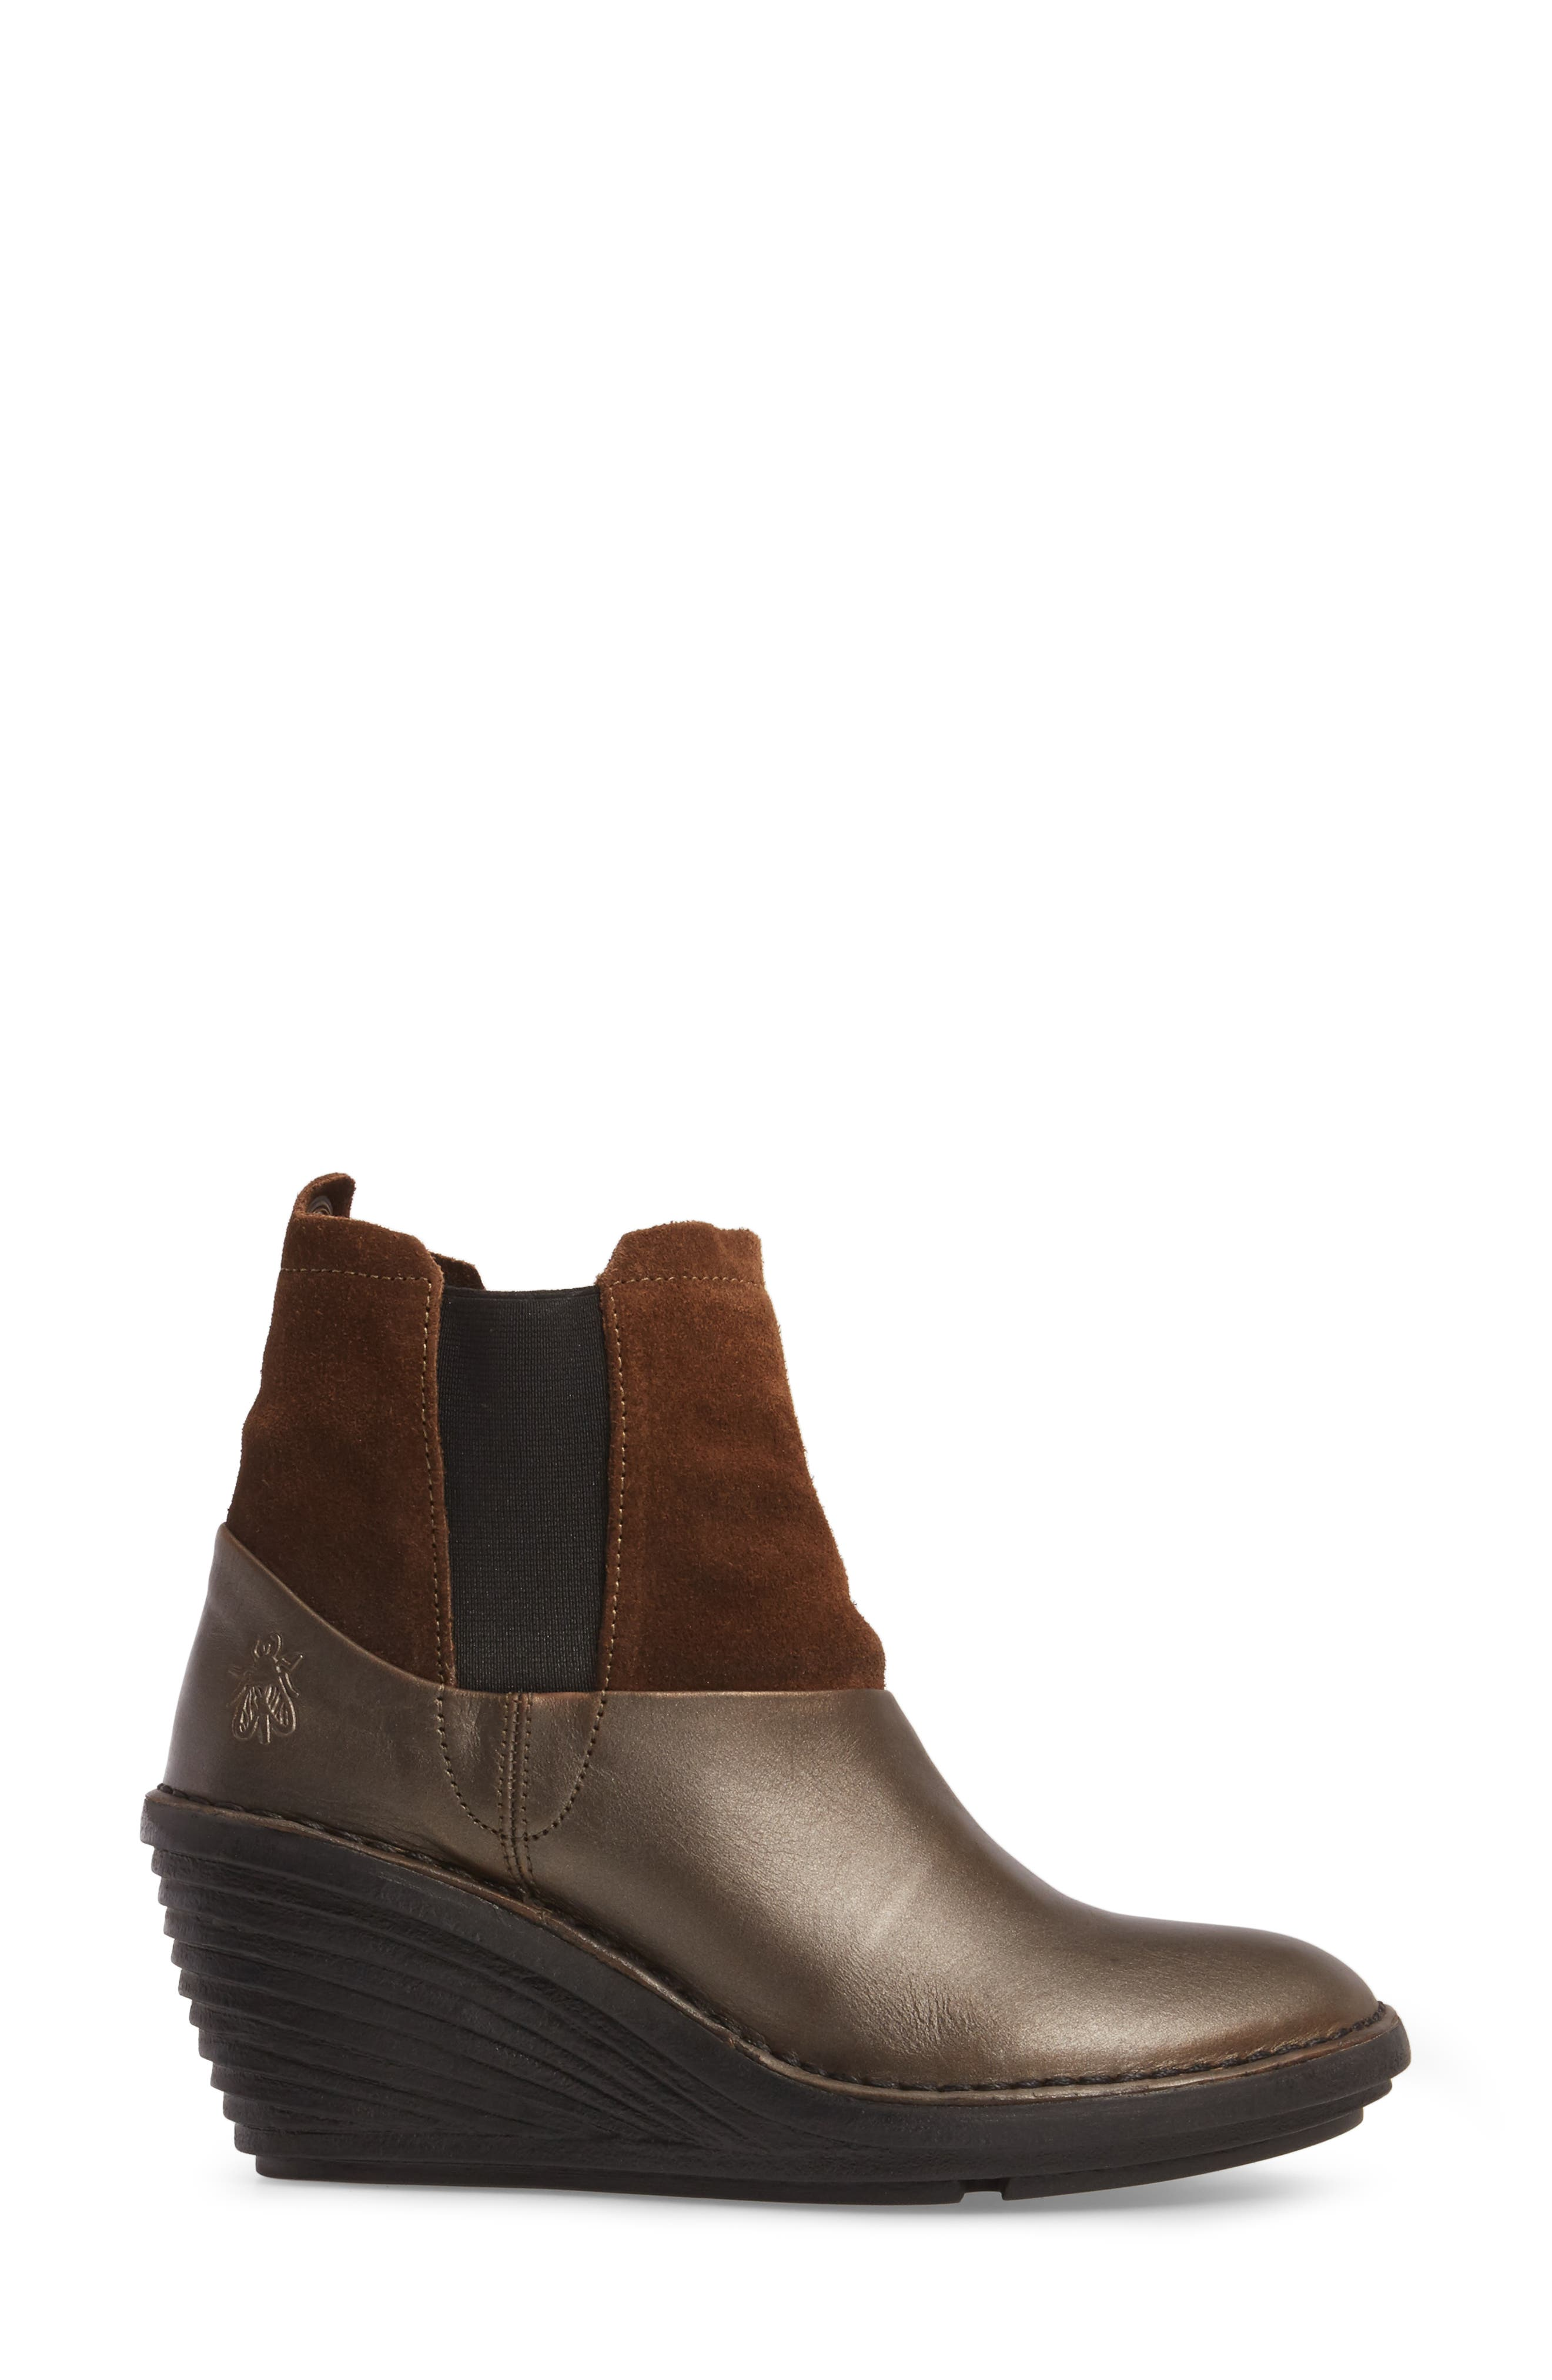 Sula Wedge Bootie,                             Alternate thumbnail 3, color,                             Olive/ Camel Suede